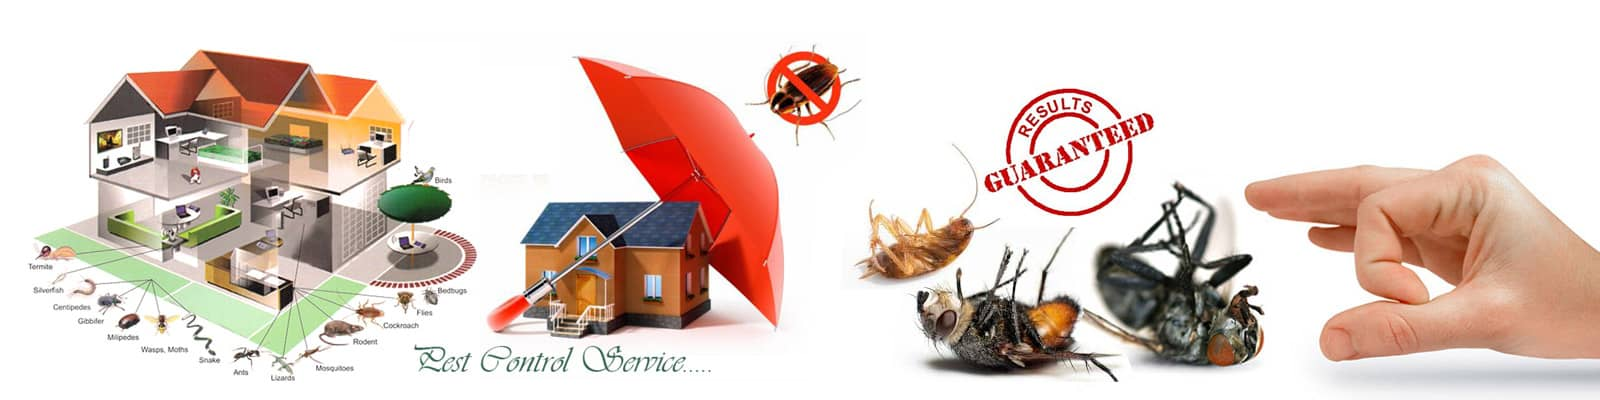 Local Certified Pest Experts Providing Fast, Safe and Effective Pest Control